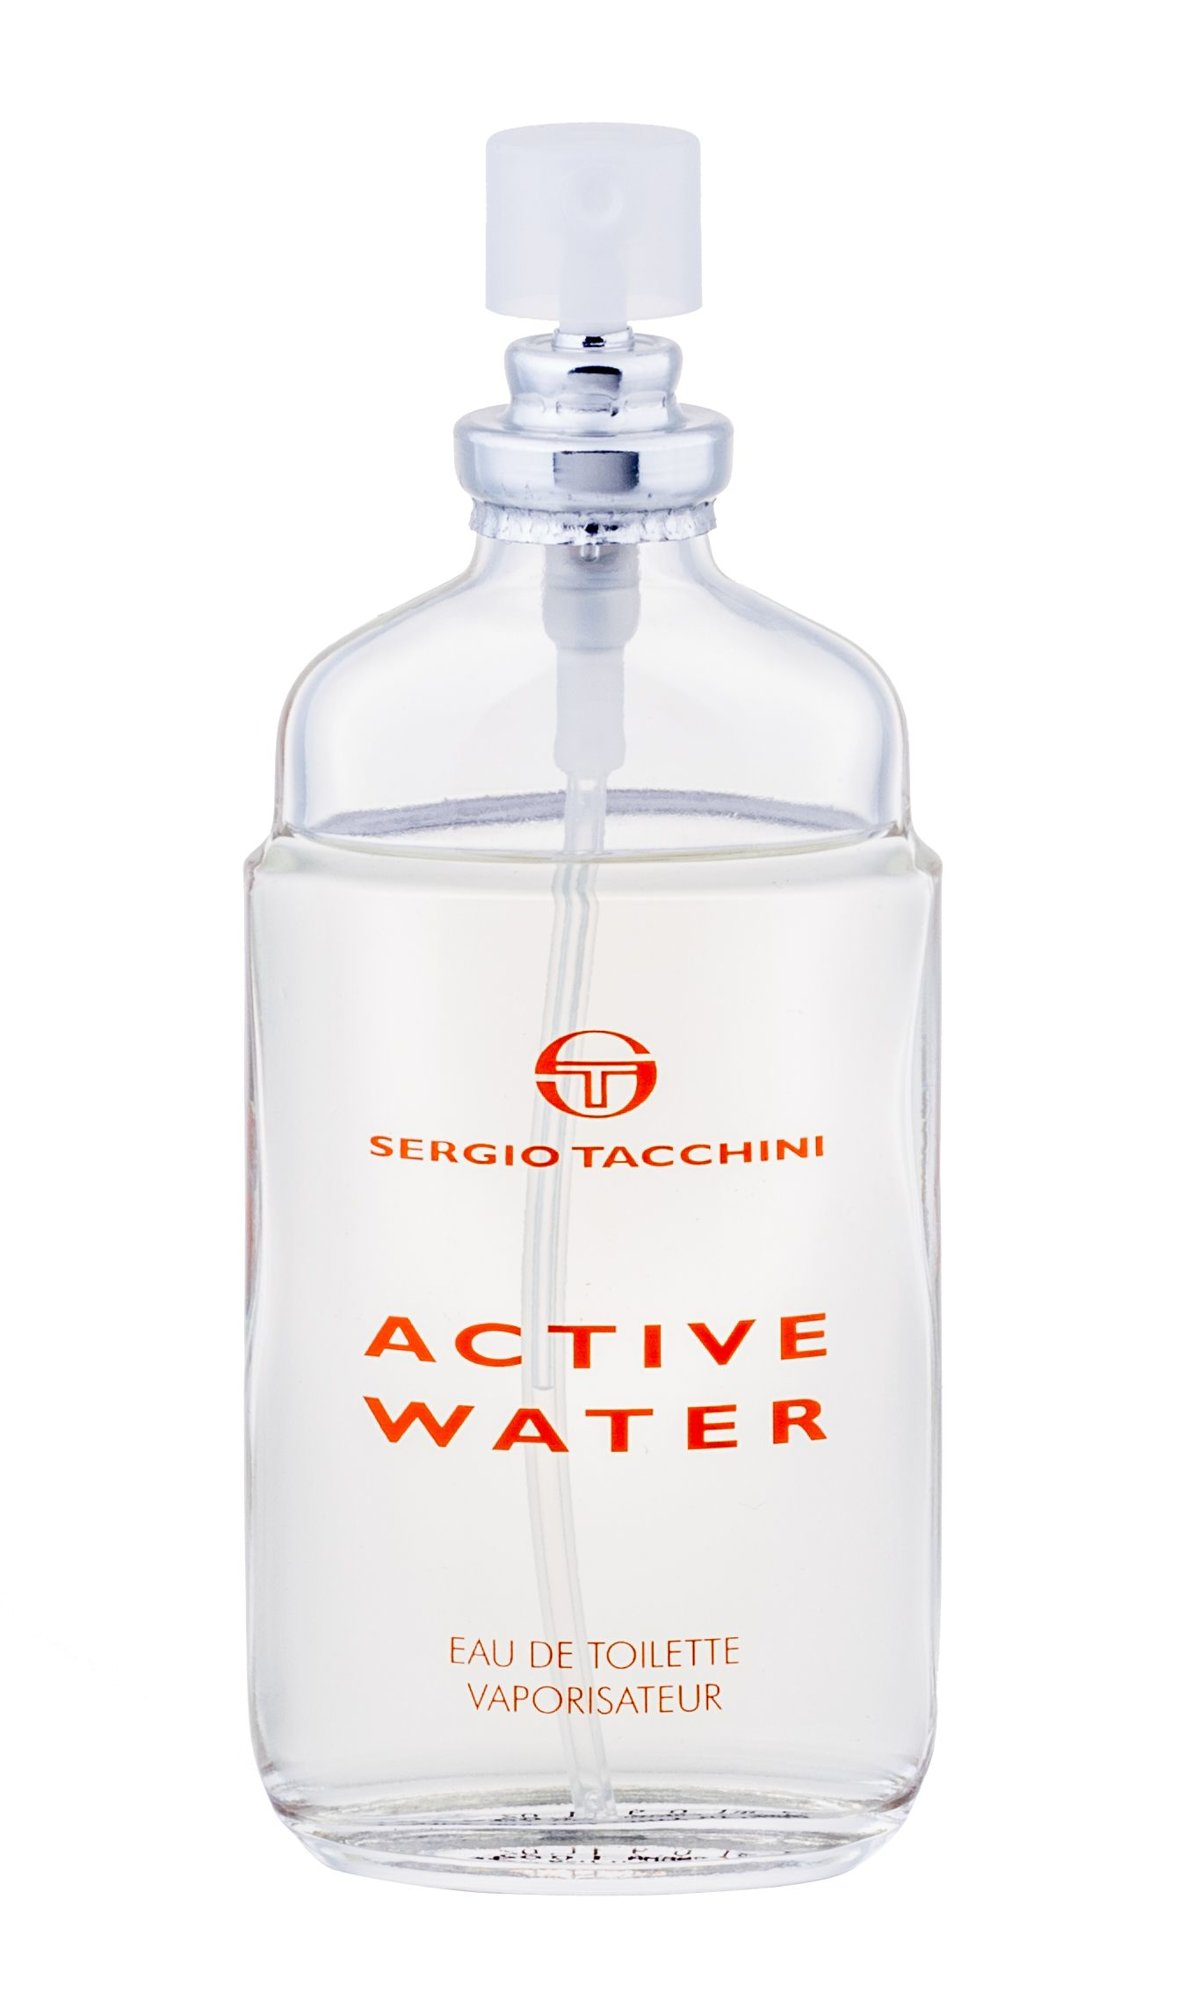 Sergio Tacchini Active Water EDT 27ml